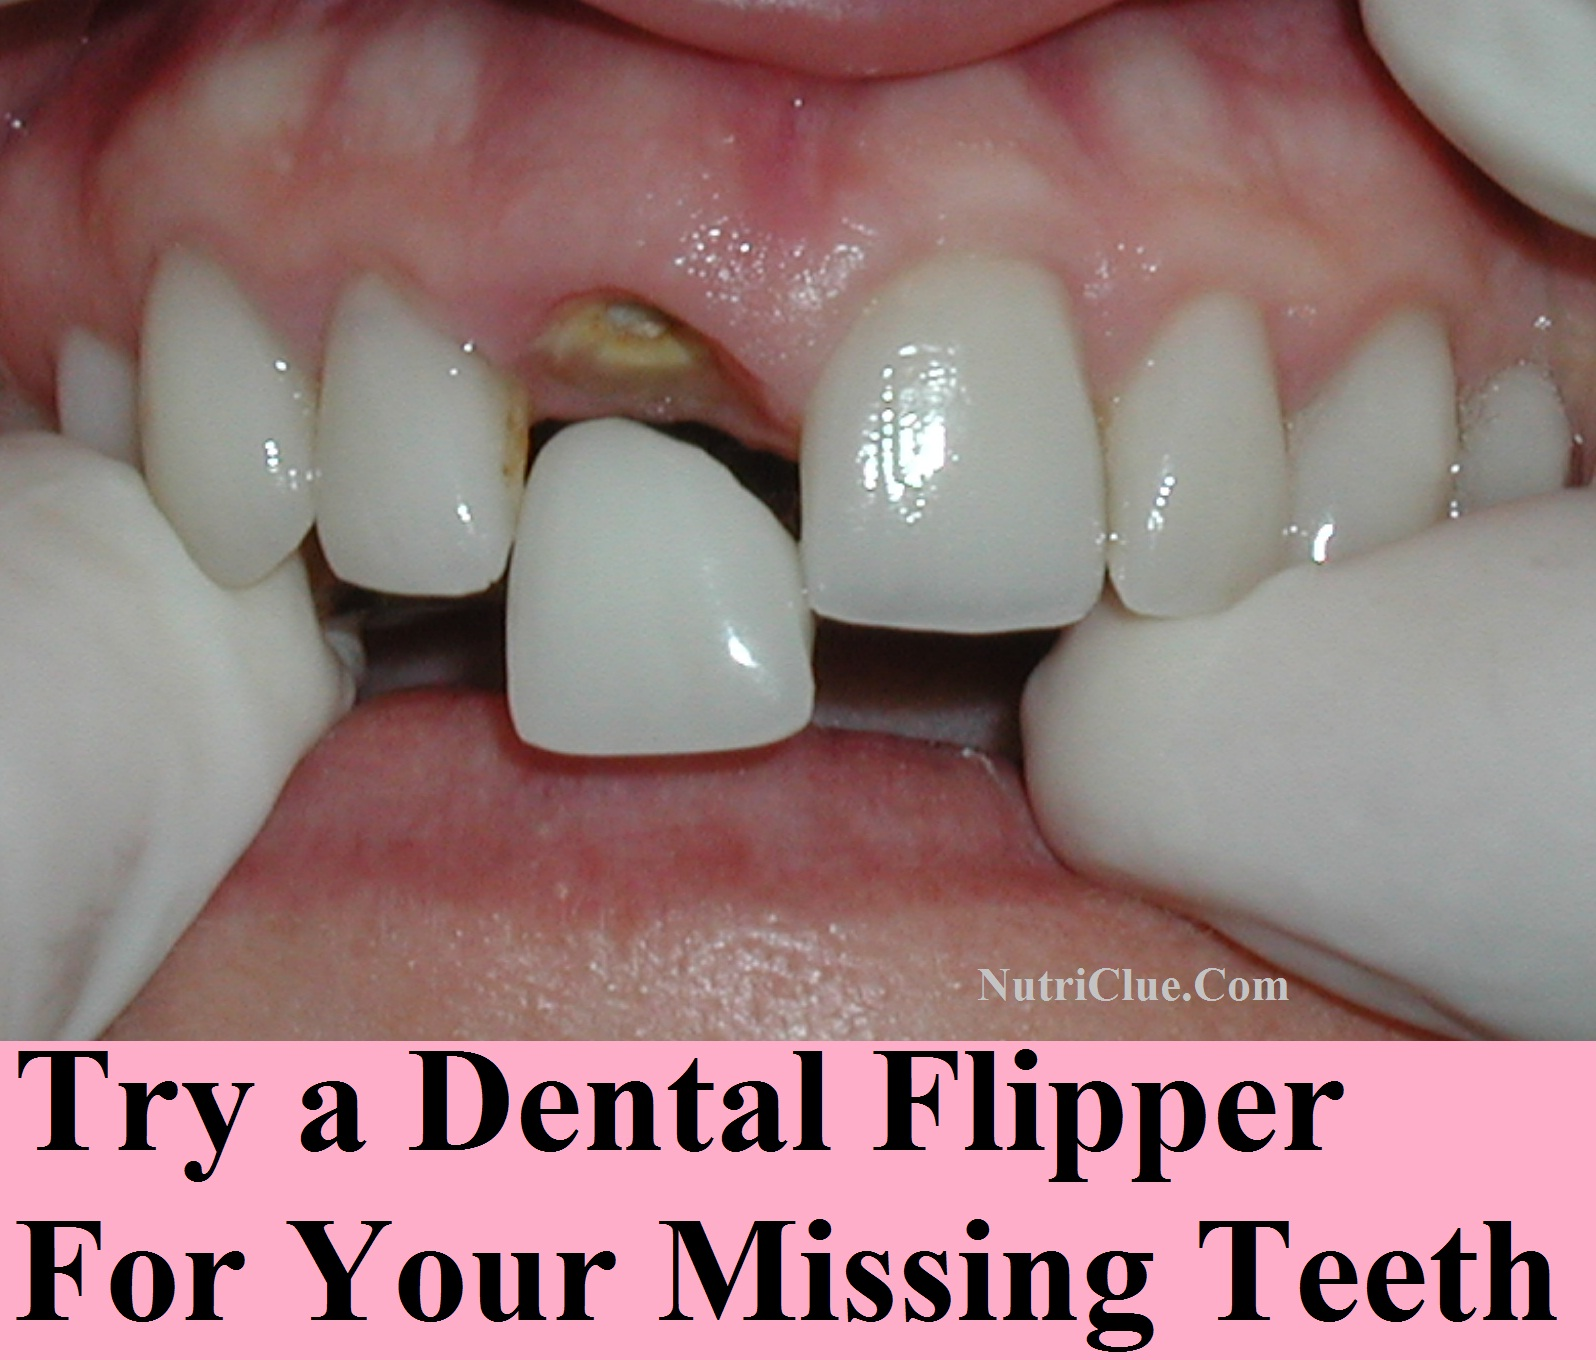 Try a dental flipper for your missing teeth